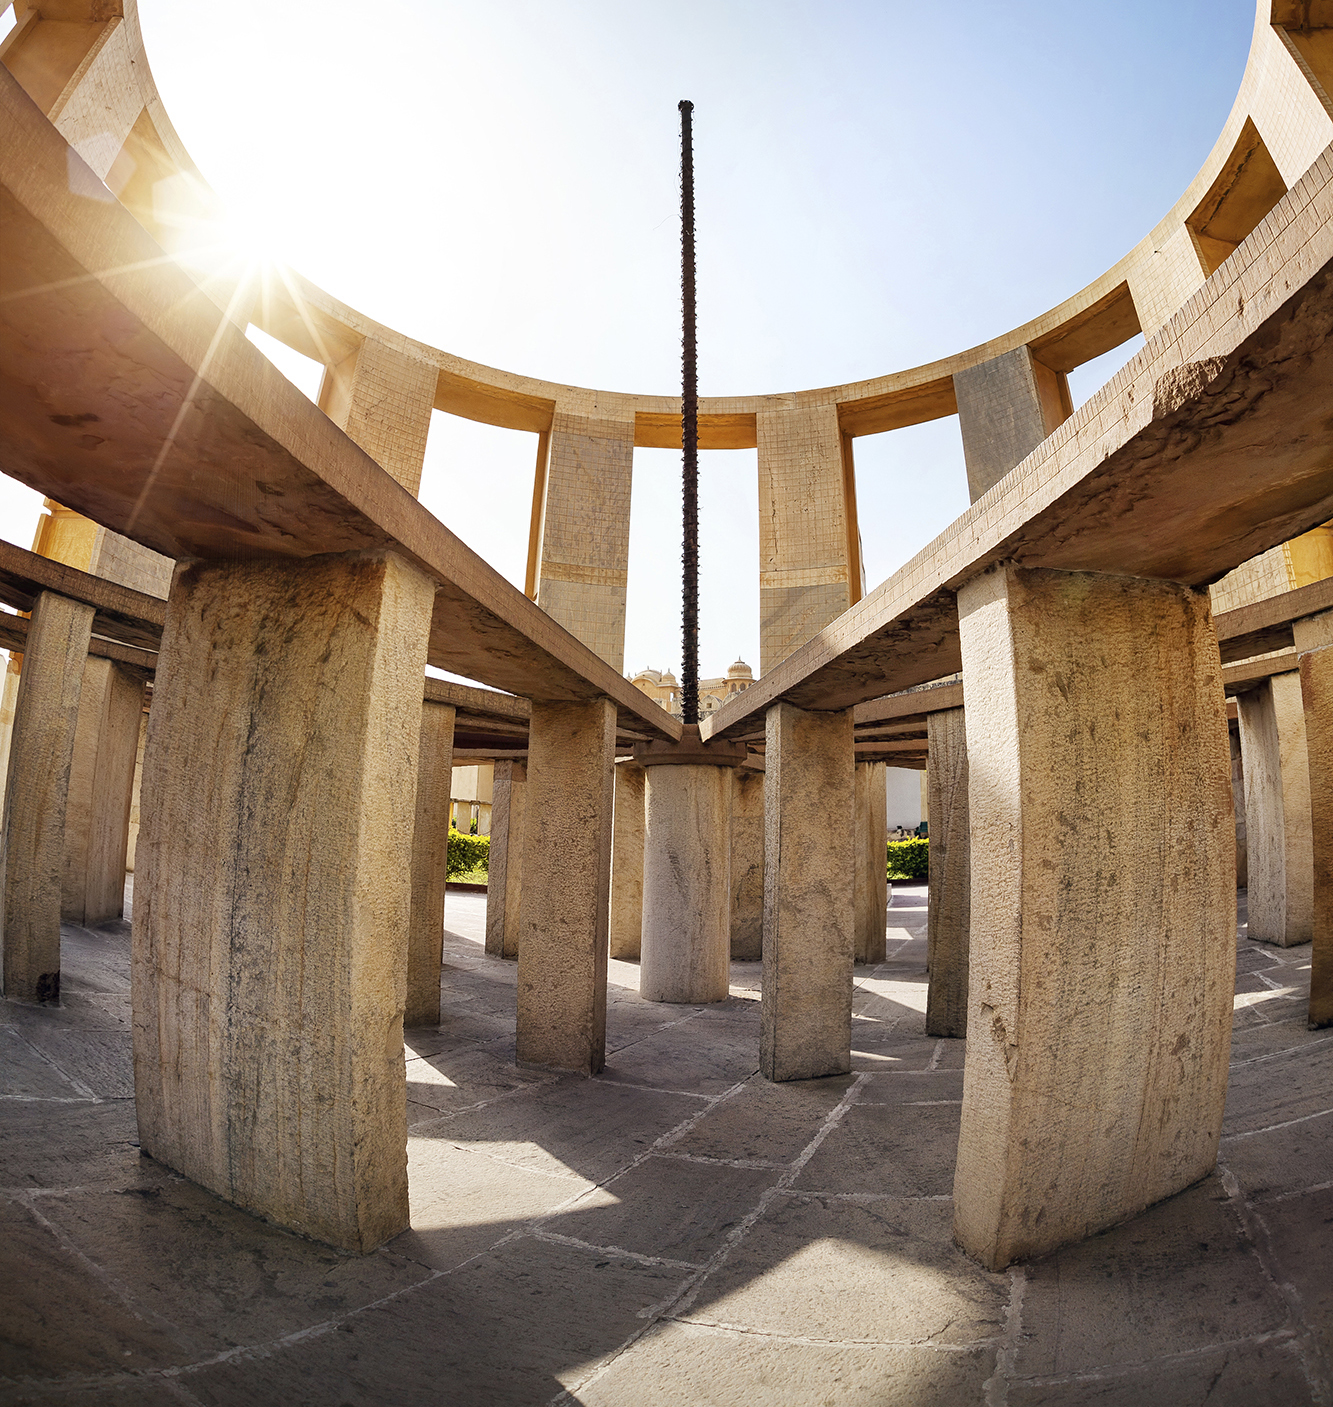 SH8MM_Oshiro_8mm_fisheye_lens_sample_2x